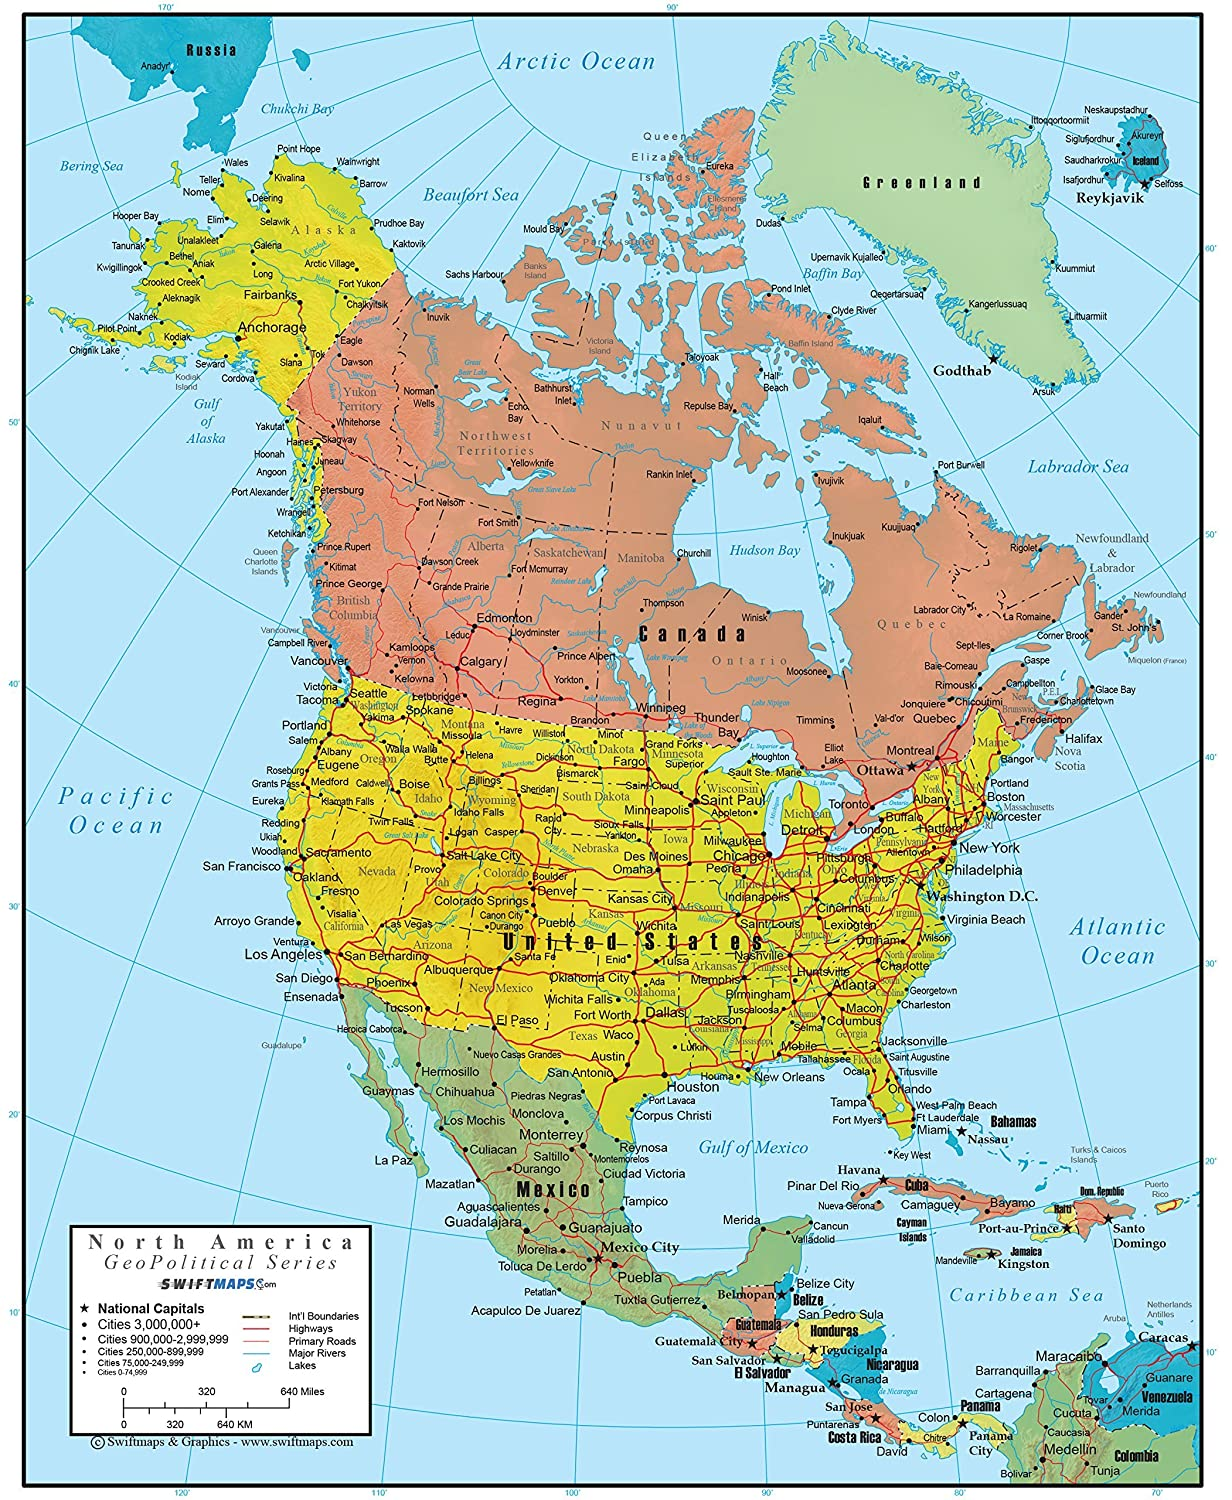 18x22 Laminated North America Wall Map GeoPolitical Edition by Swiftmaps